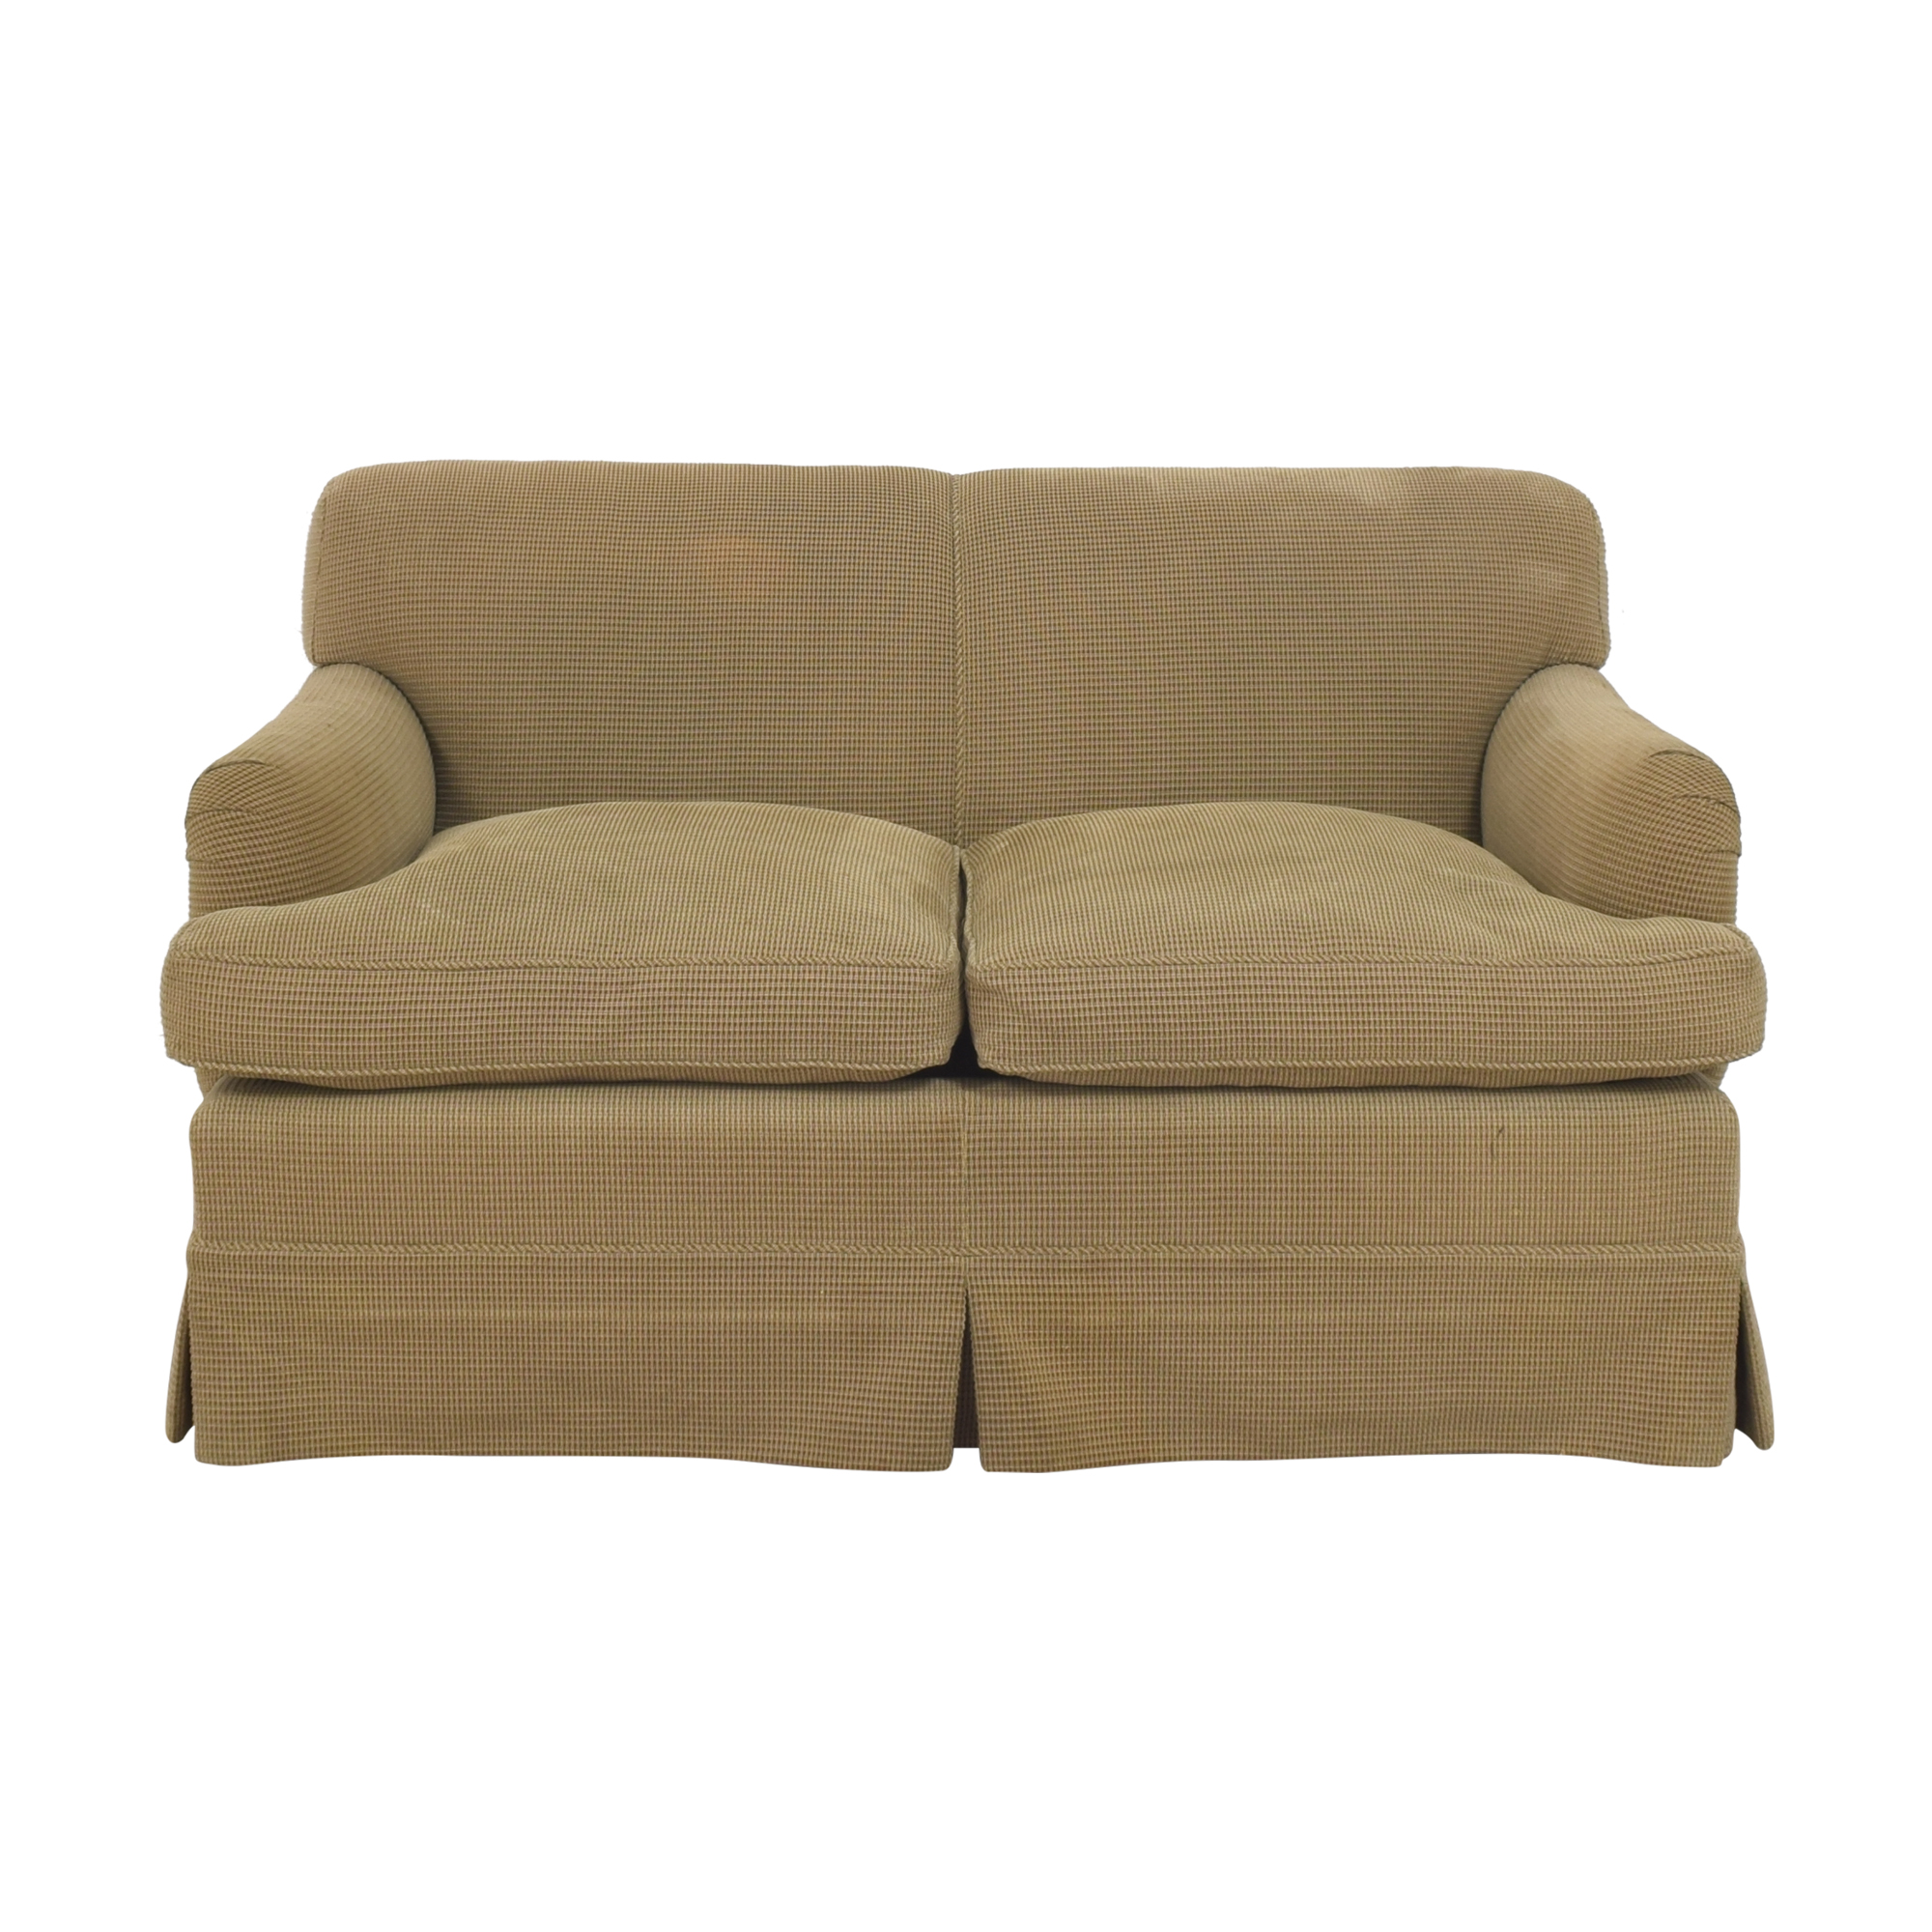 Custom Two Cushion Sofa tan